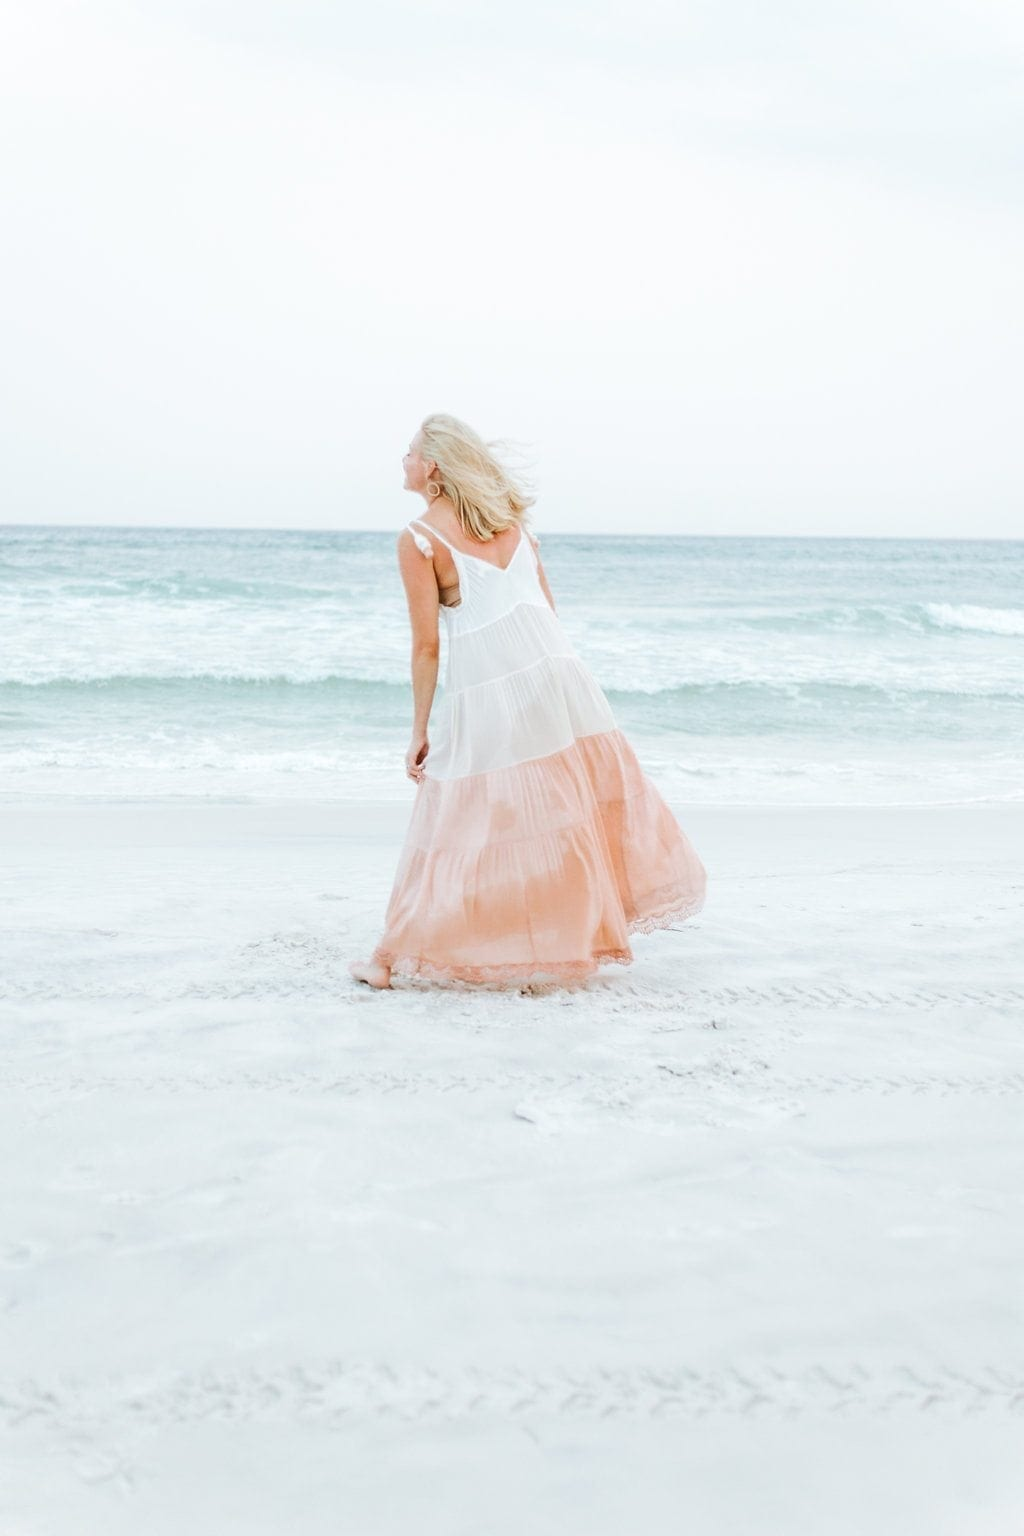 Beach maxi dress. Wind blown hair and a full skirt maxi dress are the perfect mix to wear to the beach on vacation. The soft colors are great to wear for photographs on the beach and then wear to dinner after a day in the sun.